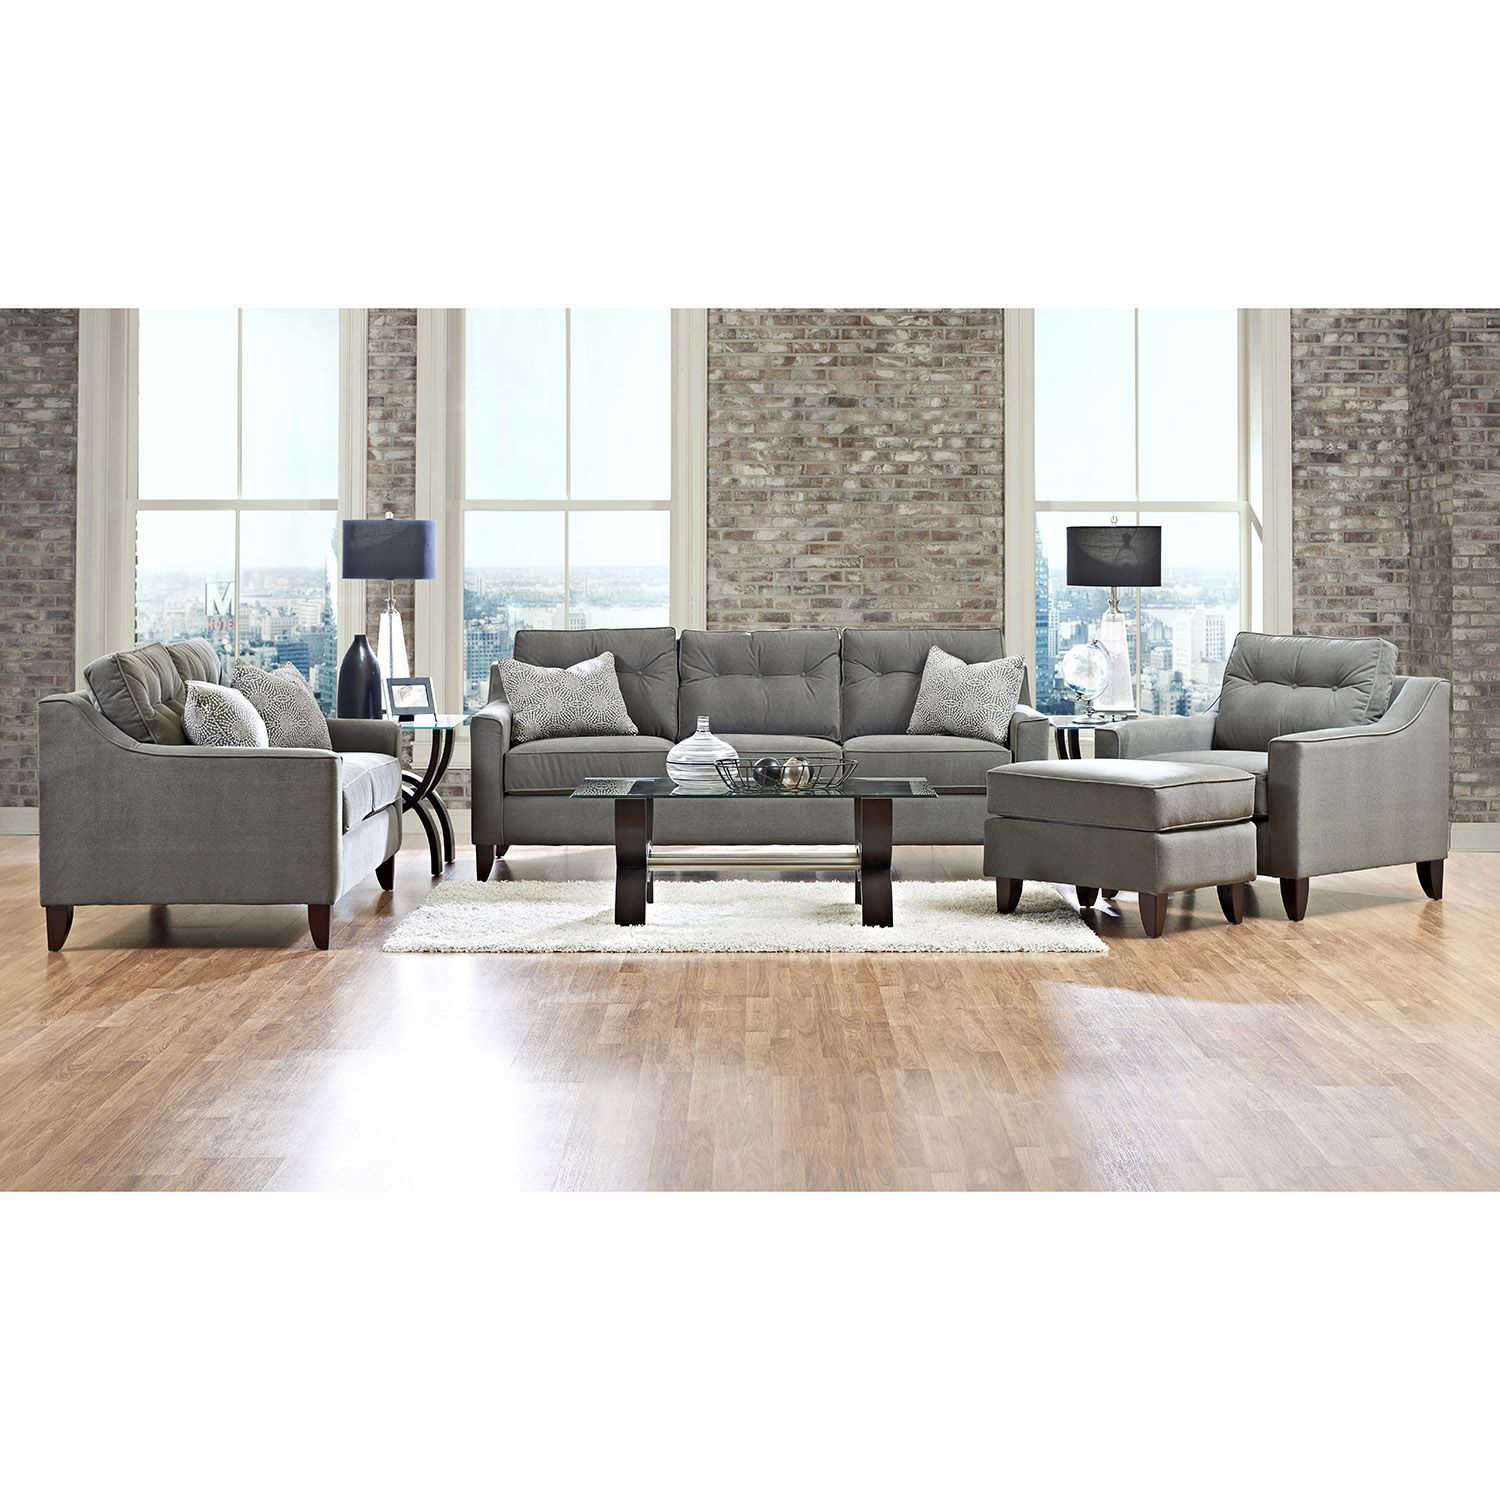 Prestige aaron sofa loveseat chair and ottoman collection sams club